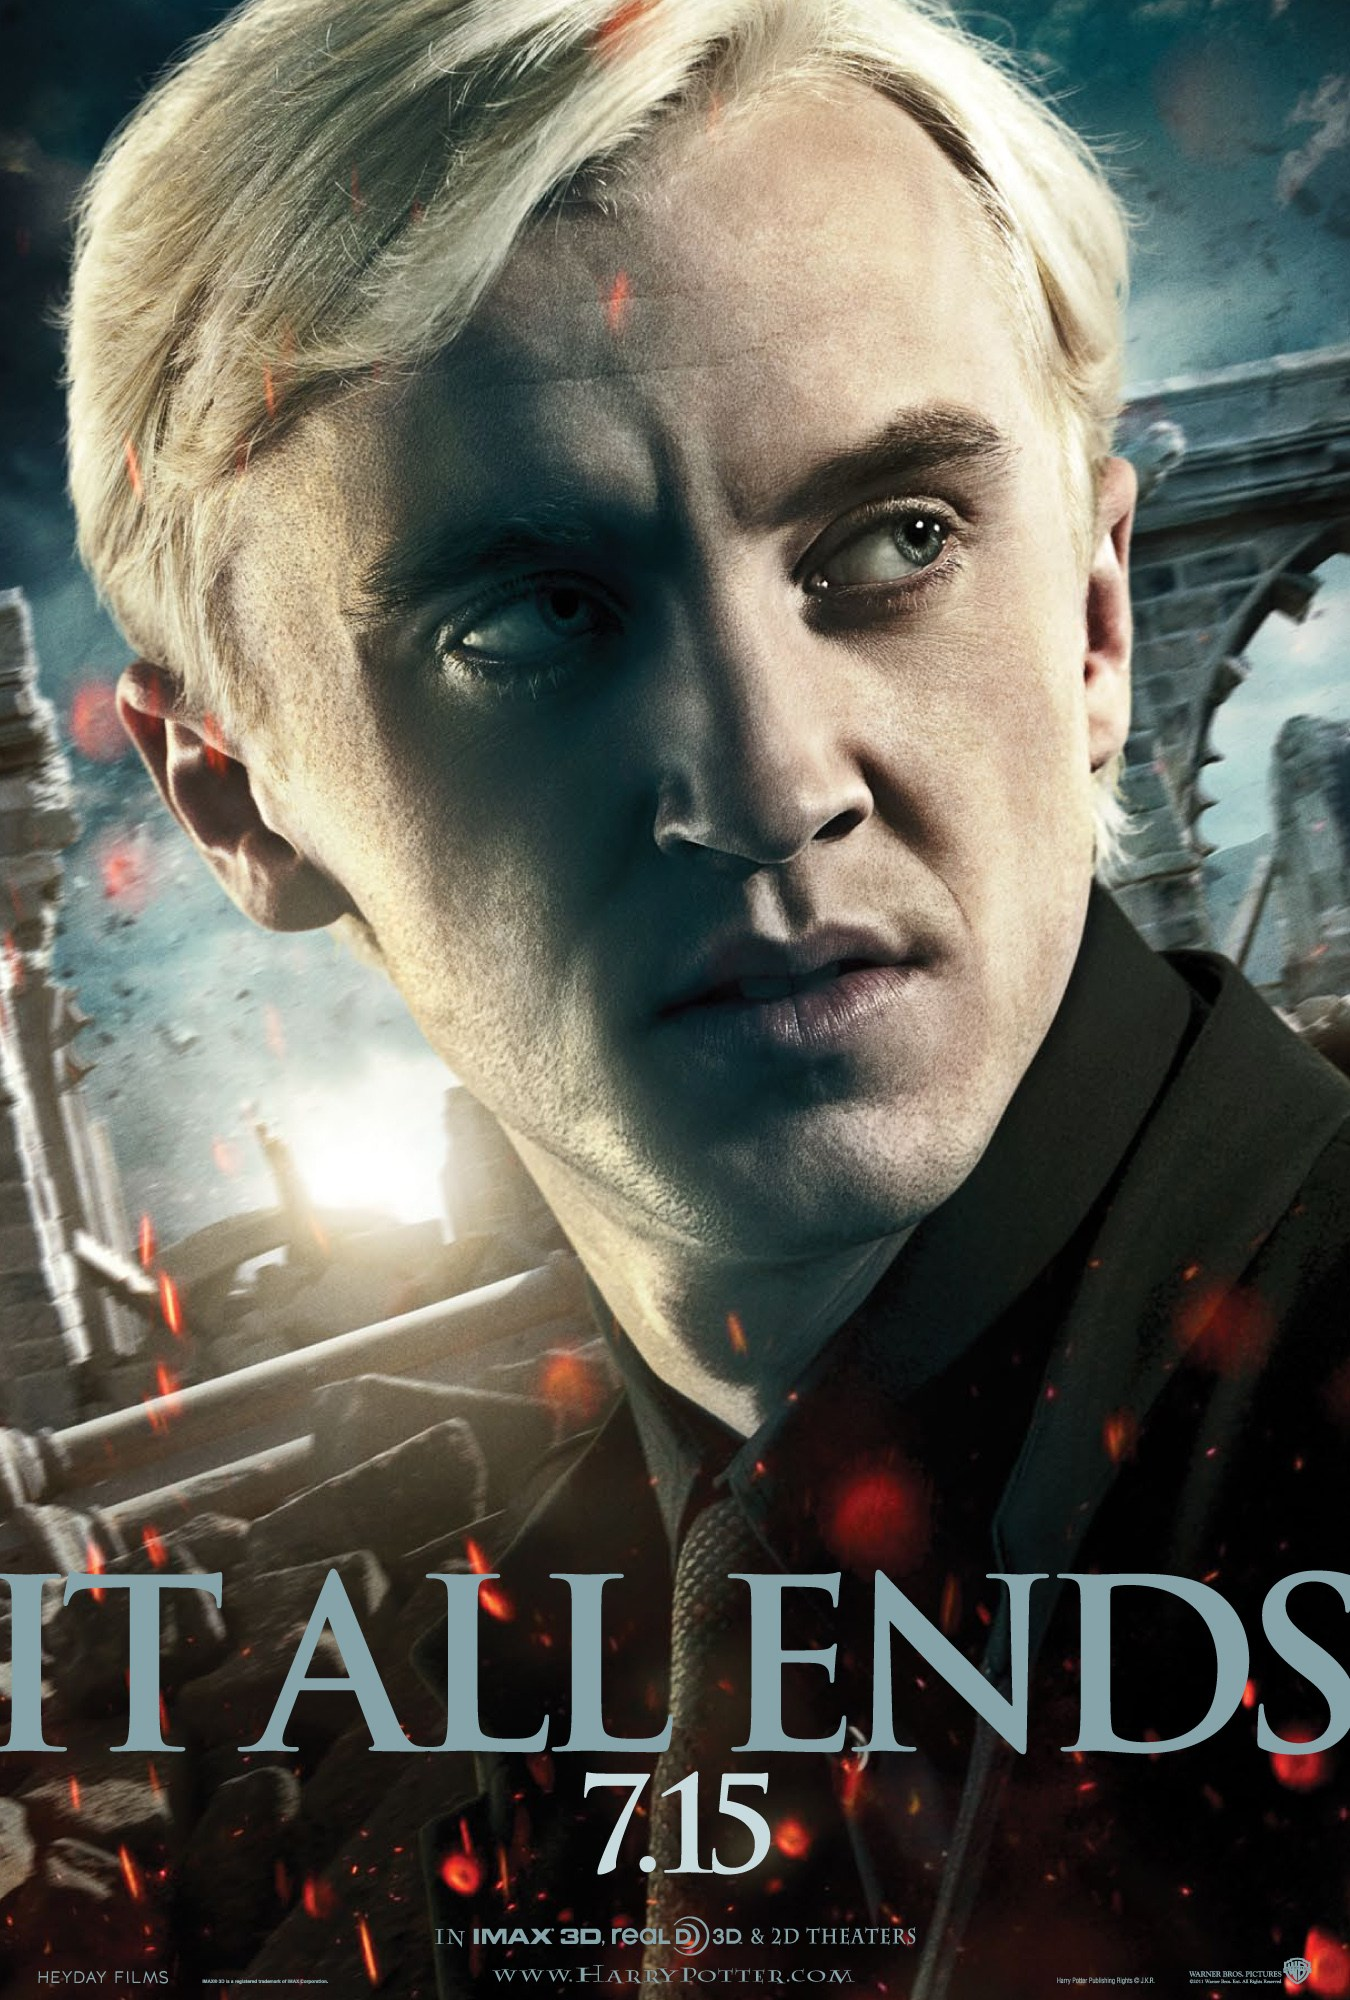 'Deathly Hallows: Part 2' Draco poster #2